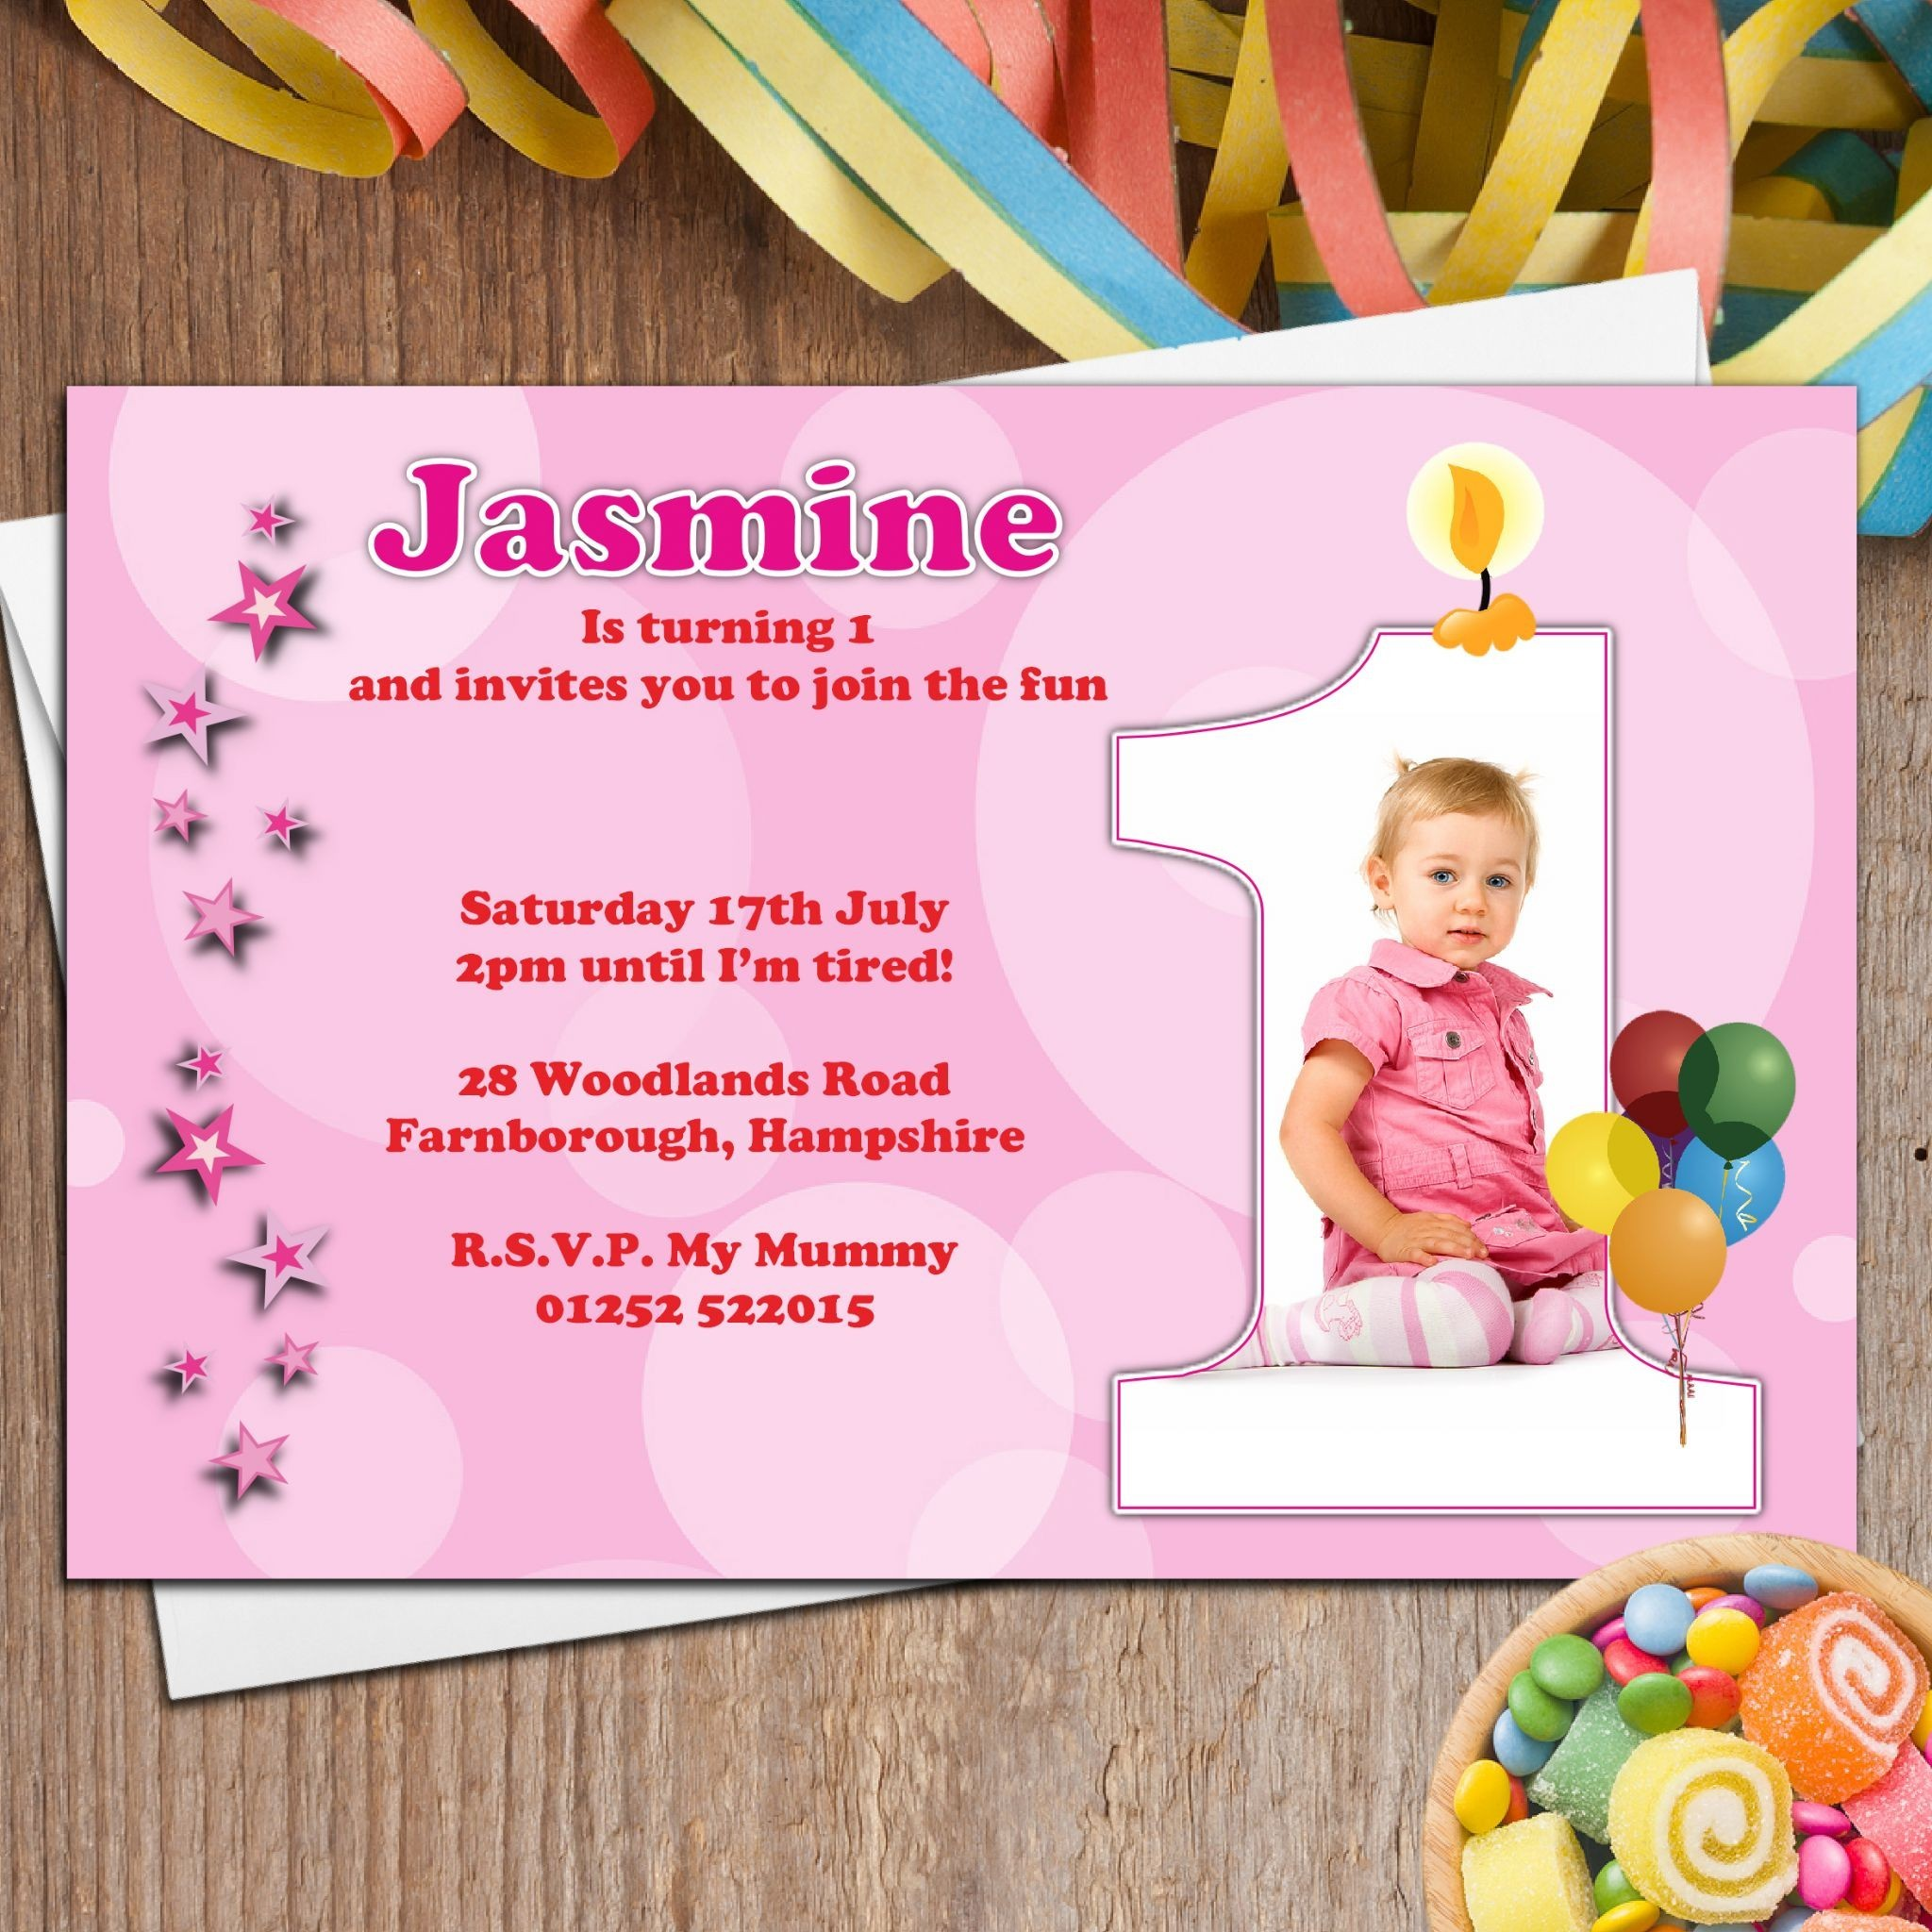 invitation letter for 1st birthday party ; sample-invitation-letter-for-first-birthday-party-save-sample-invitation-for-1st-birthday-party-new-editable-1st-birthday-of-sample-invitation-letter-for-first-birthday-party